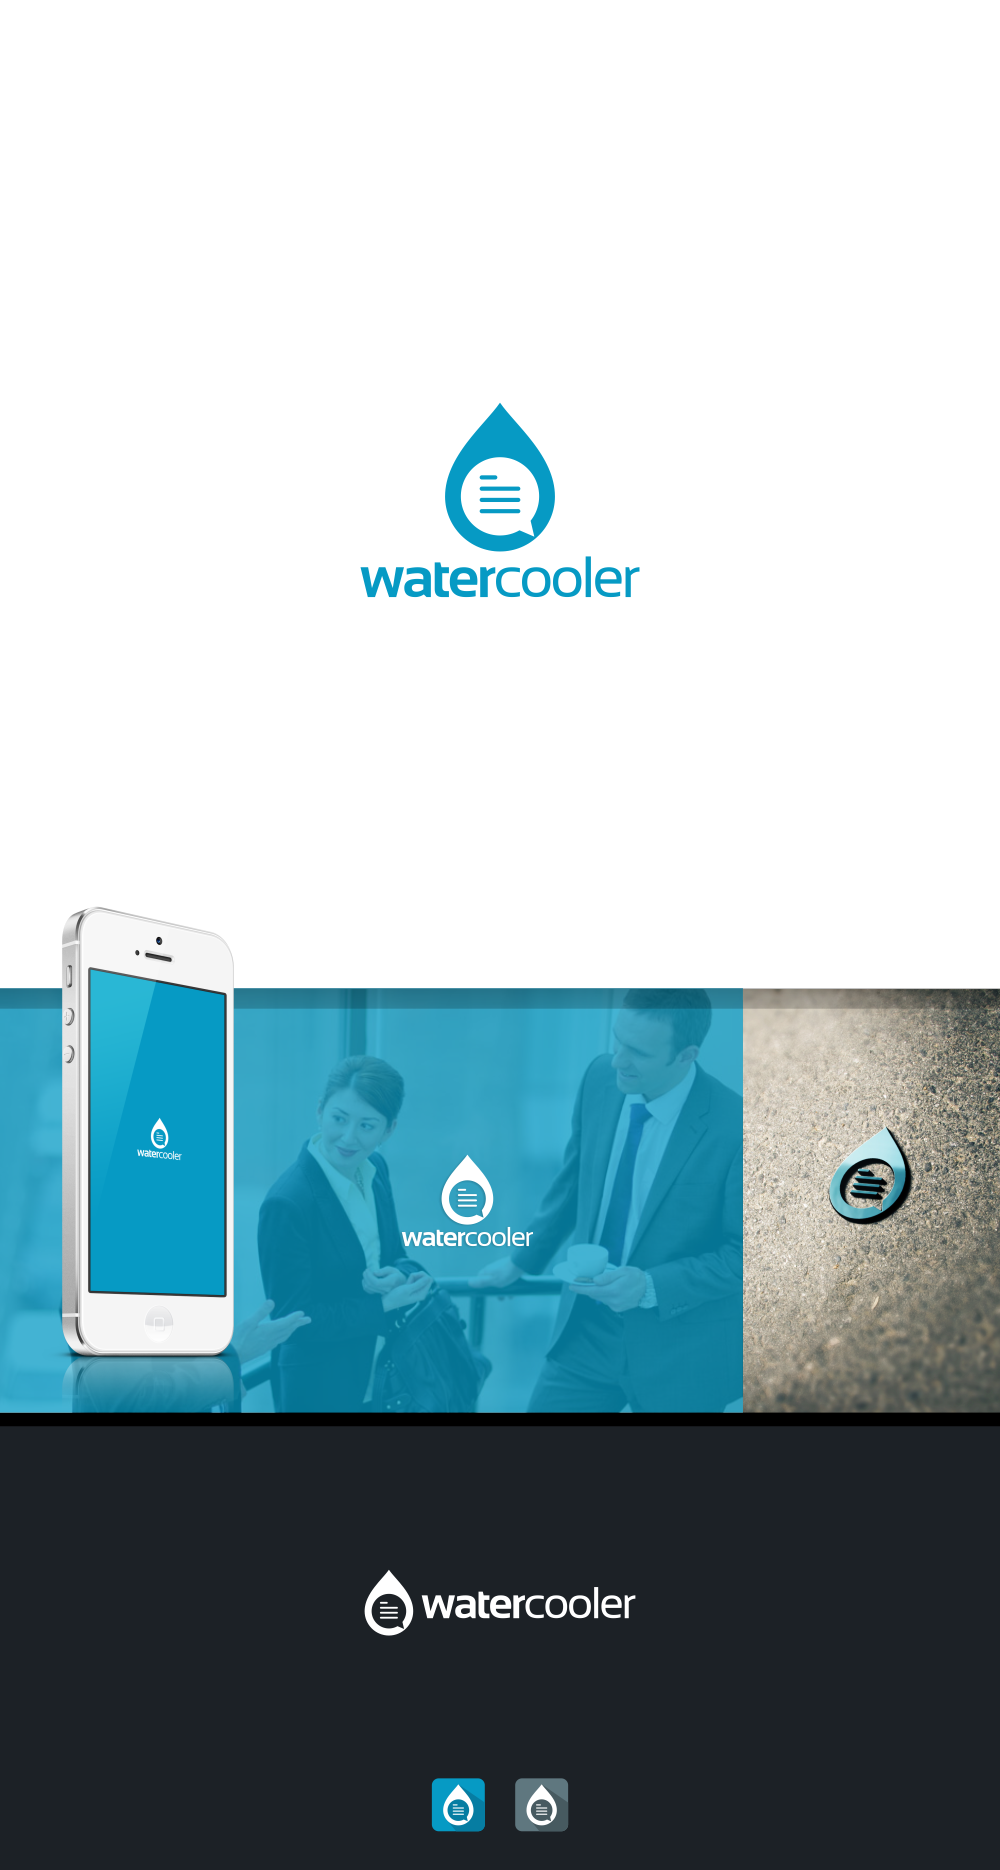 Watercooler App Logo and Icon